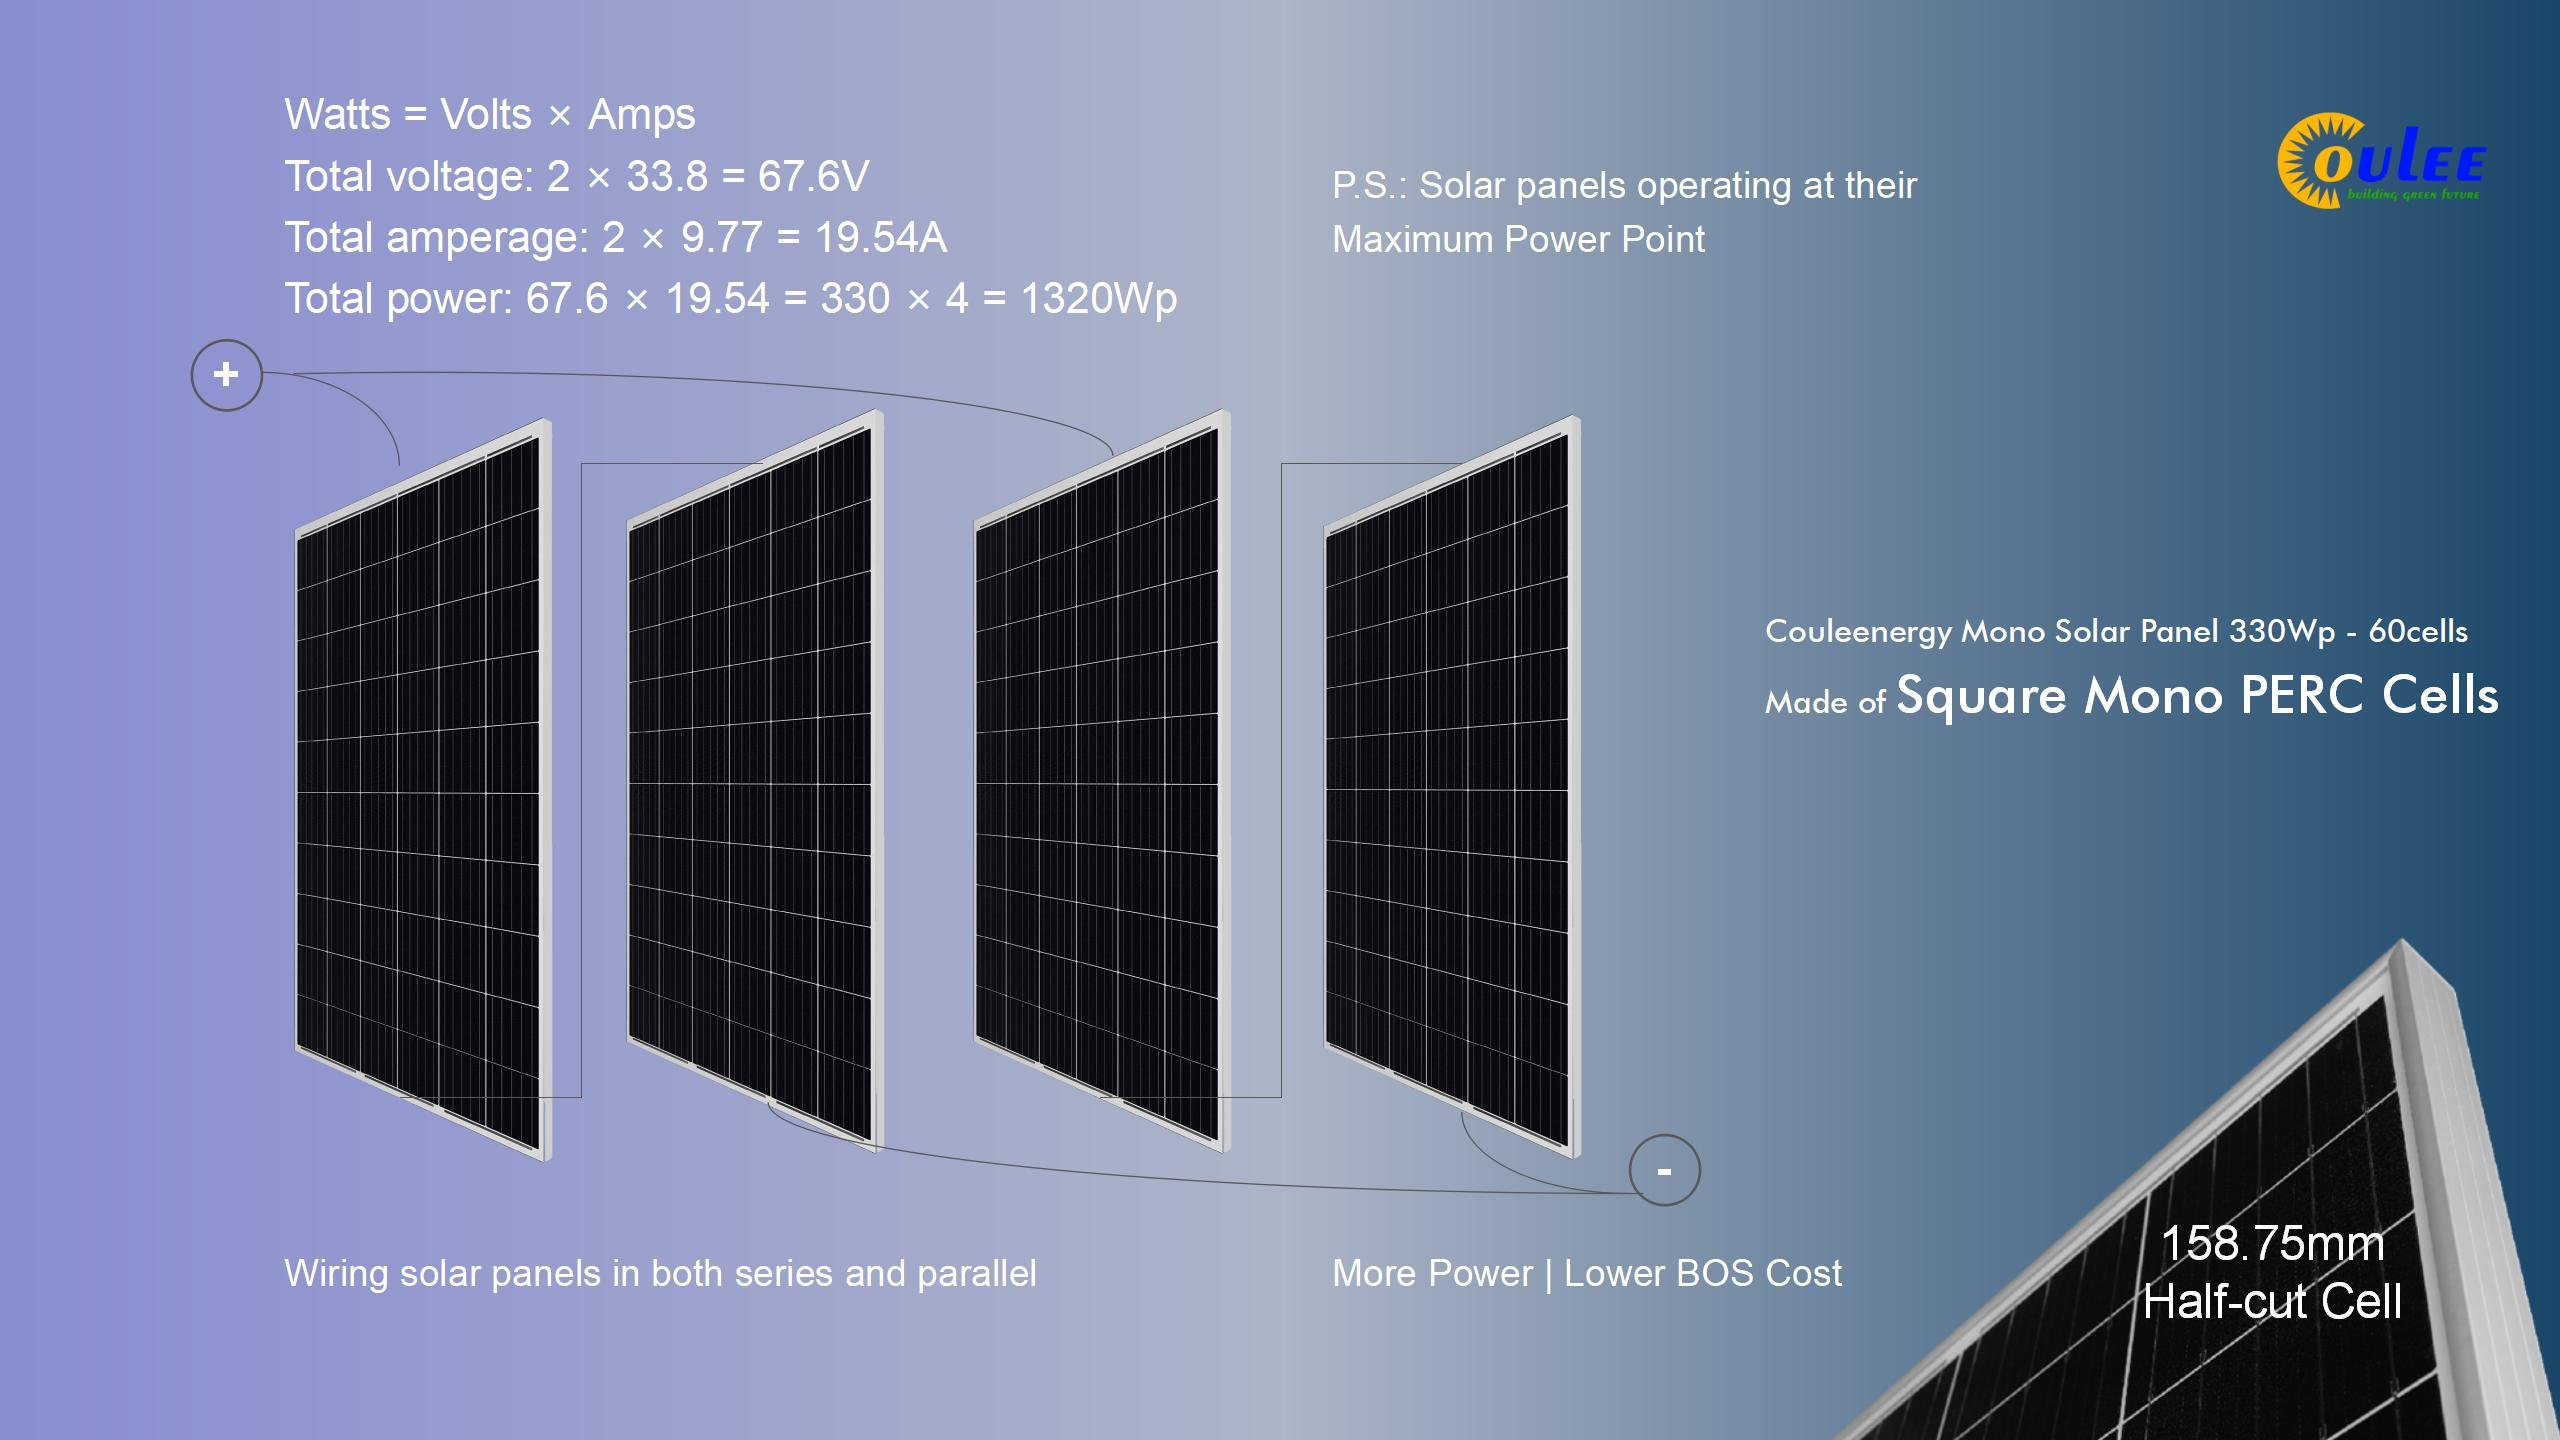 How to wire solar panels in parallel and series